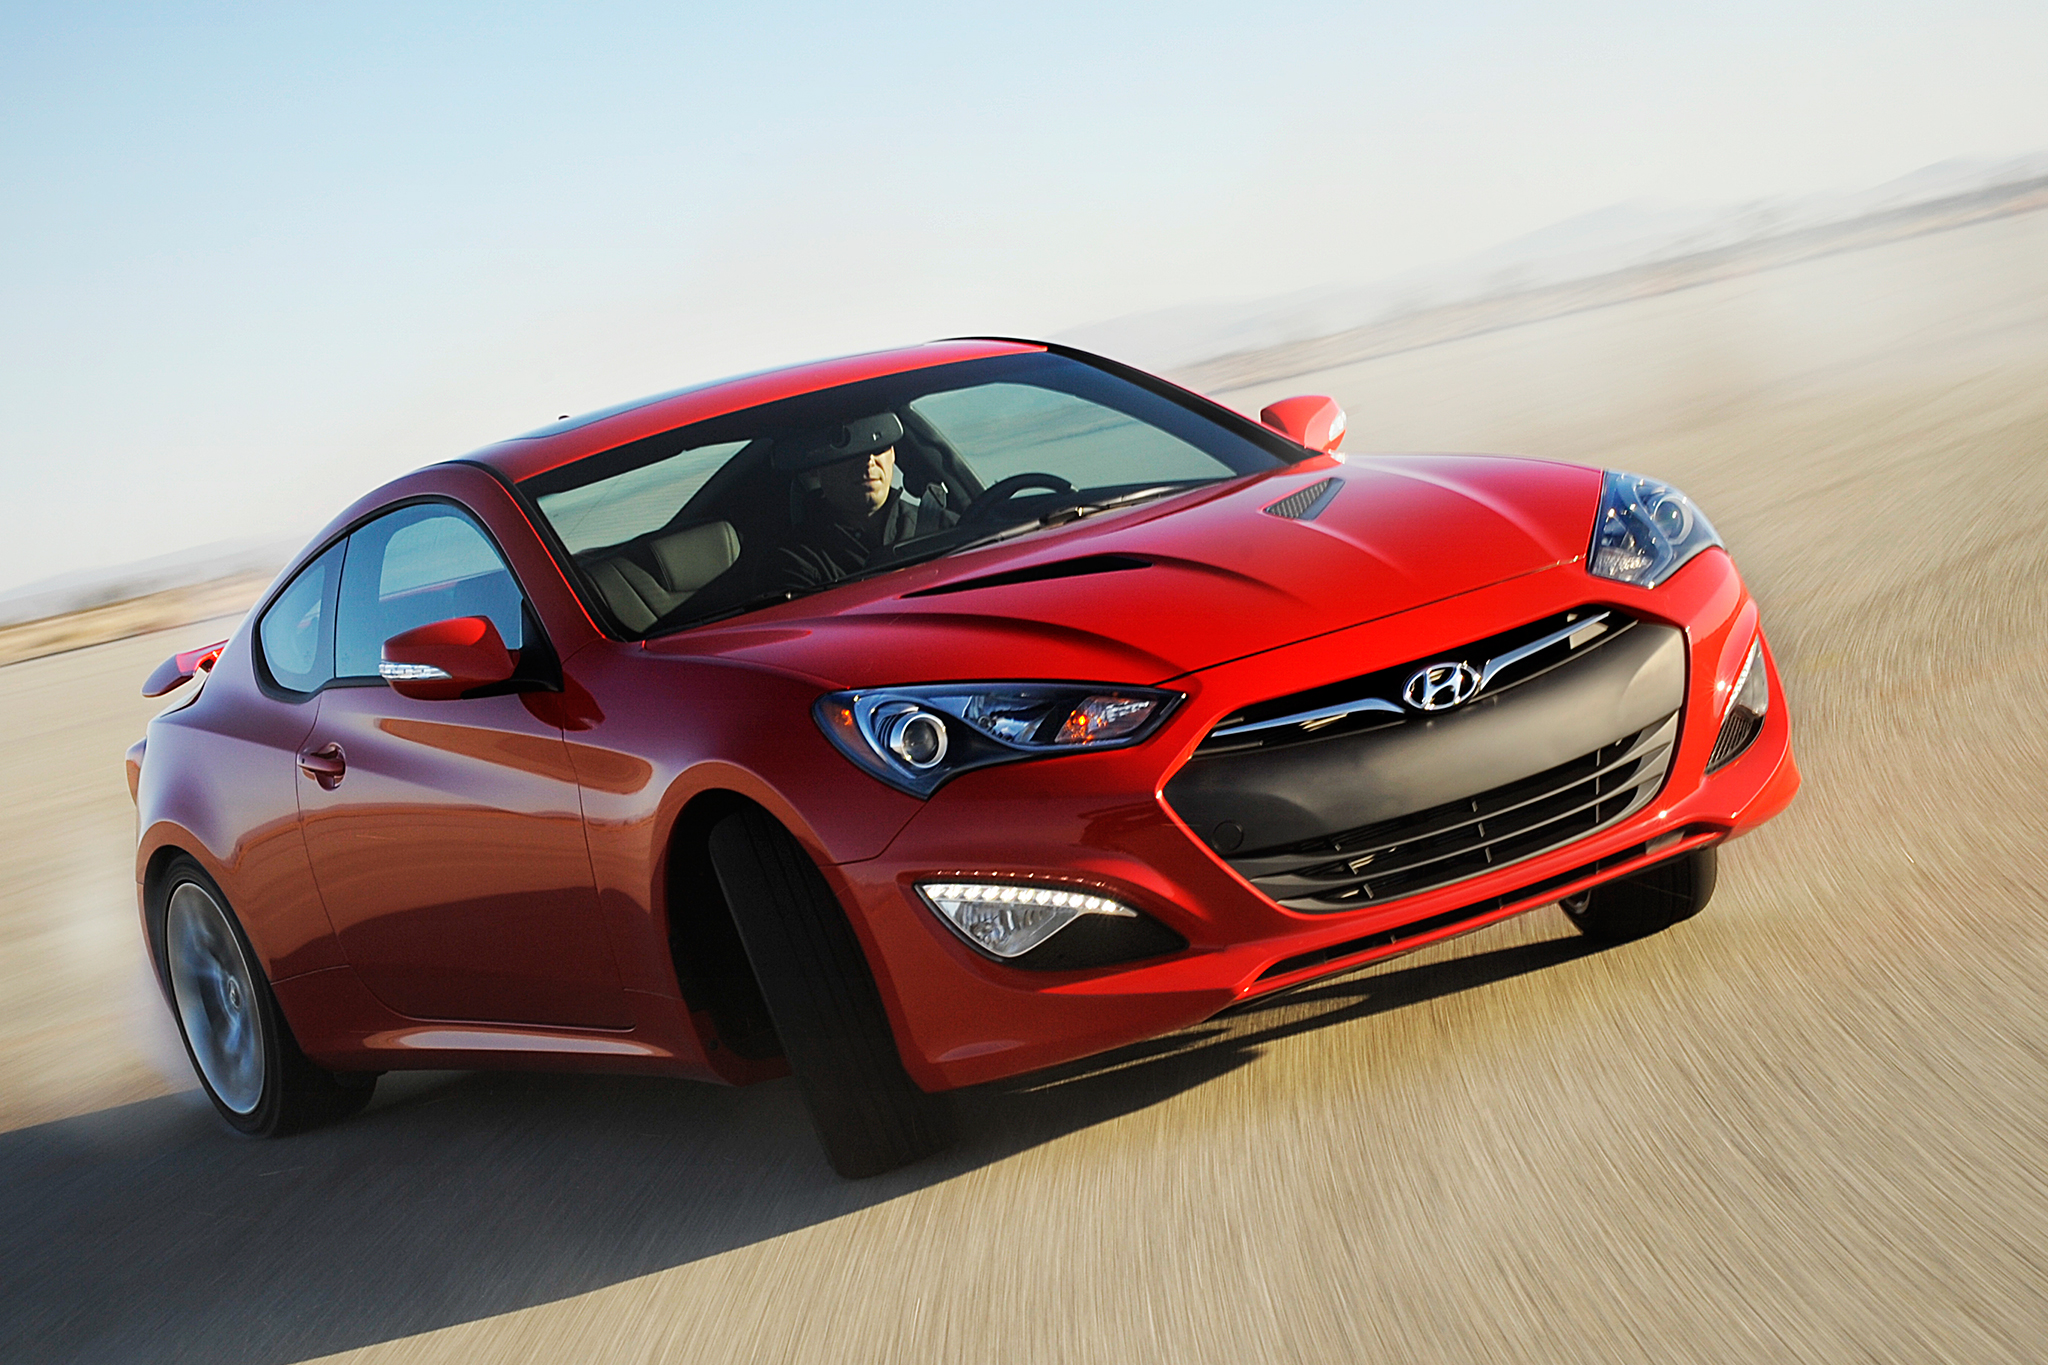 Marvelous 2014 Hyundai Genesis Coupe Gets Minor Update, Slight Price Bump